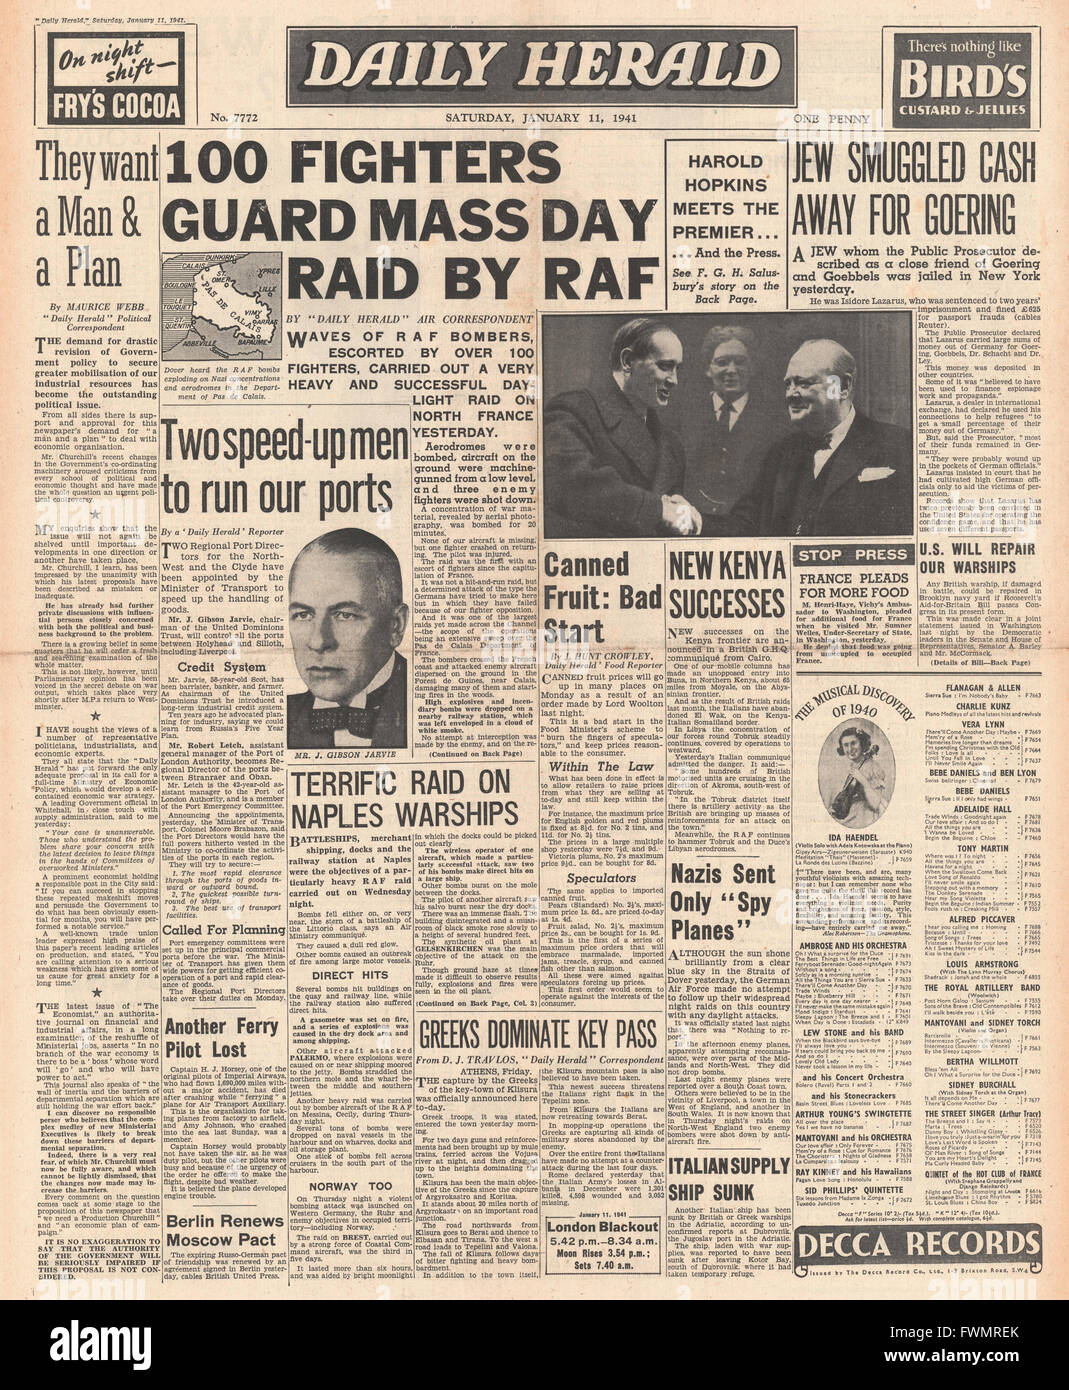 1941 front page Daily Herald First RAF mass daylight raid and unlimited US aid for Britain - Stock Image